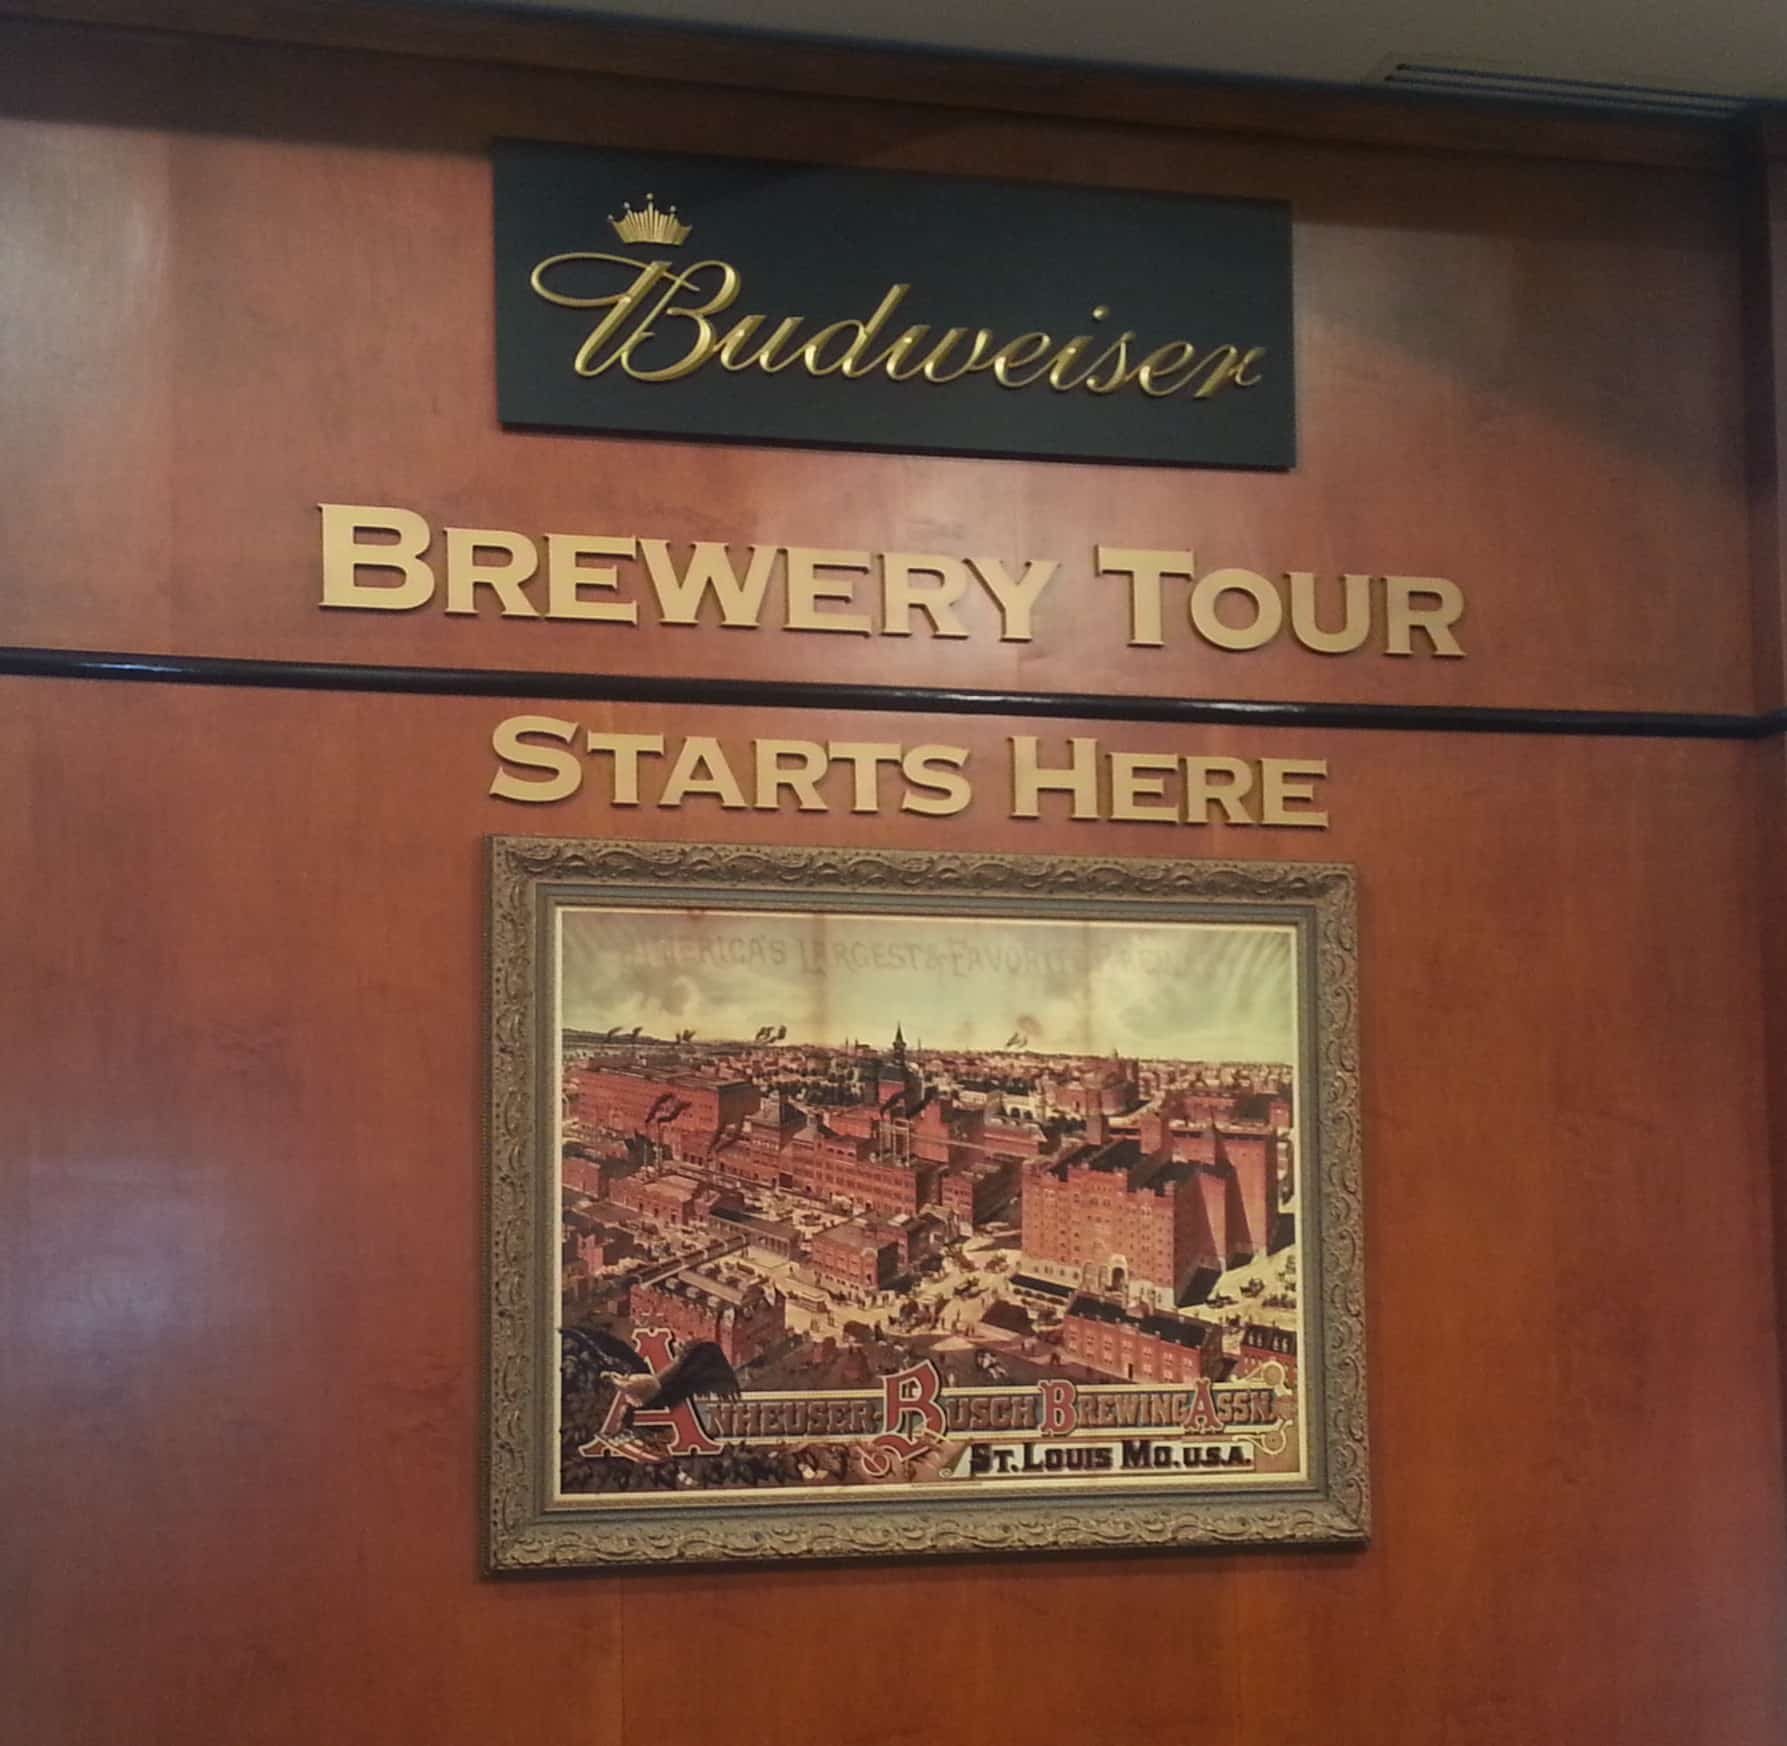 Budweiser Brewery Tour, St. Louis, MO - Tour starts here sign